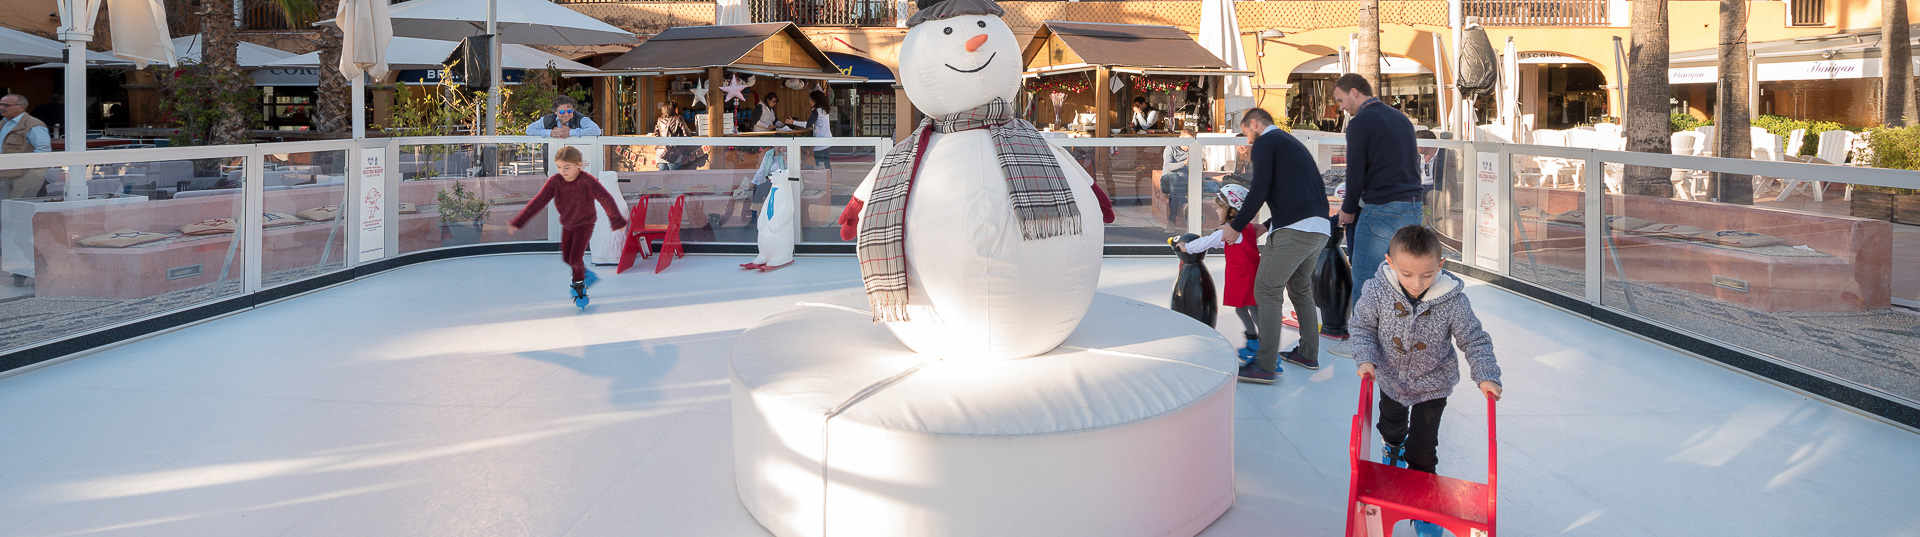 Synthetic holiday ice rink during Christmas| Ask for rental prices